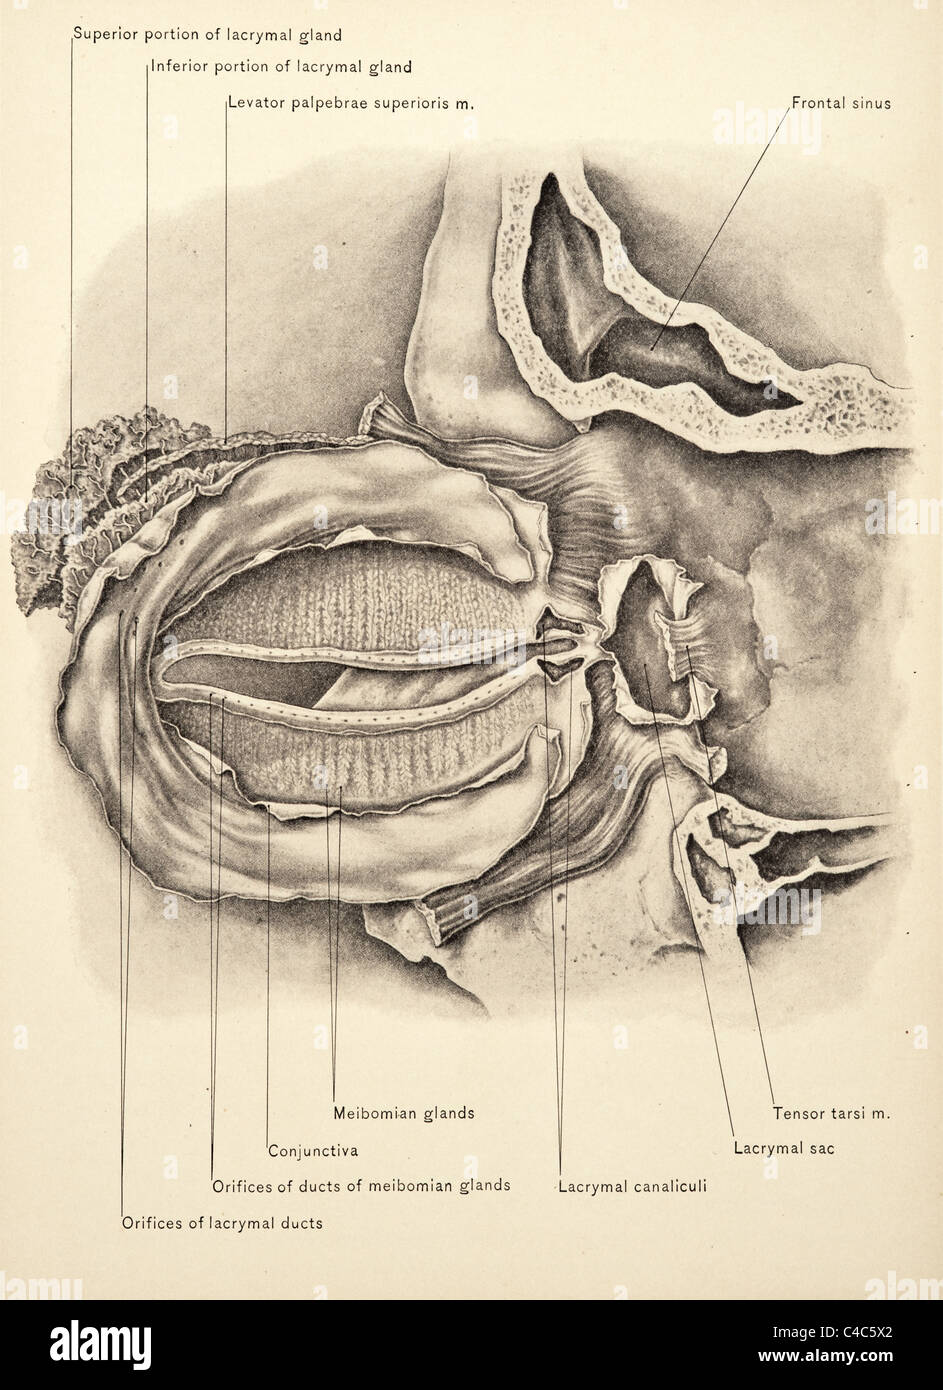 Surgical Anatomy Of The Head And Neck By John B Deaver Copyright